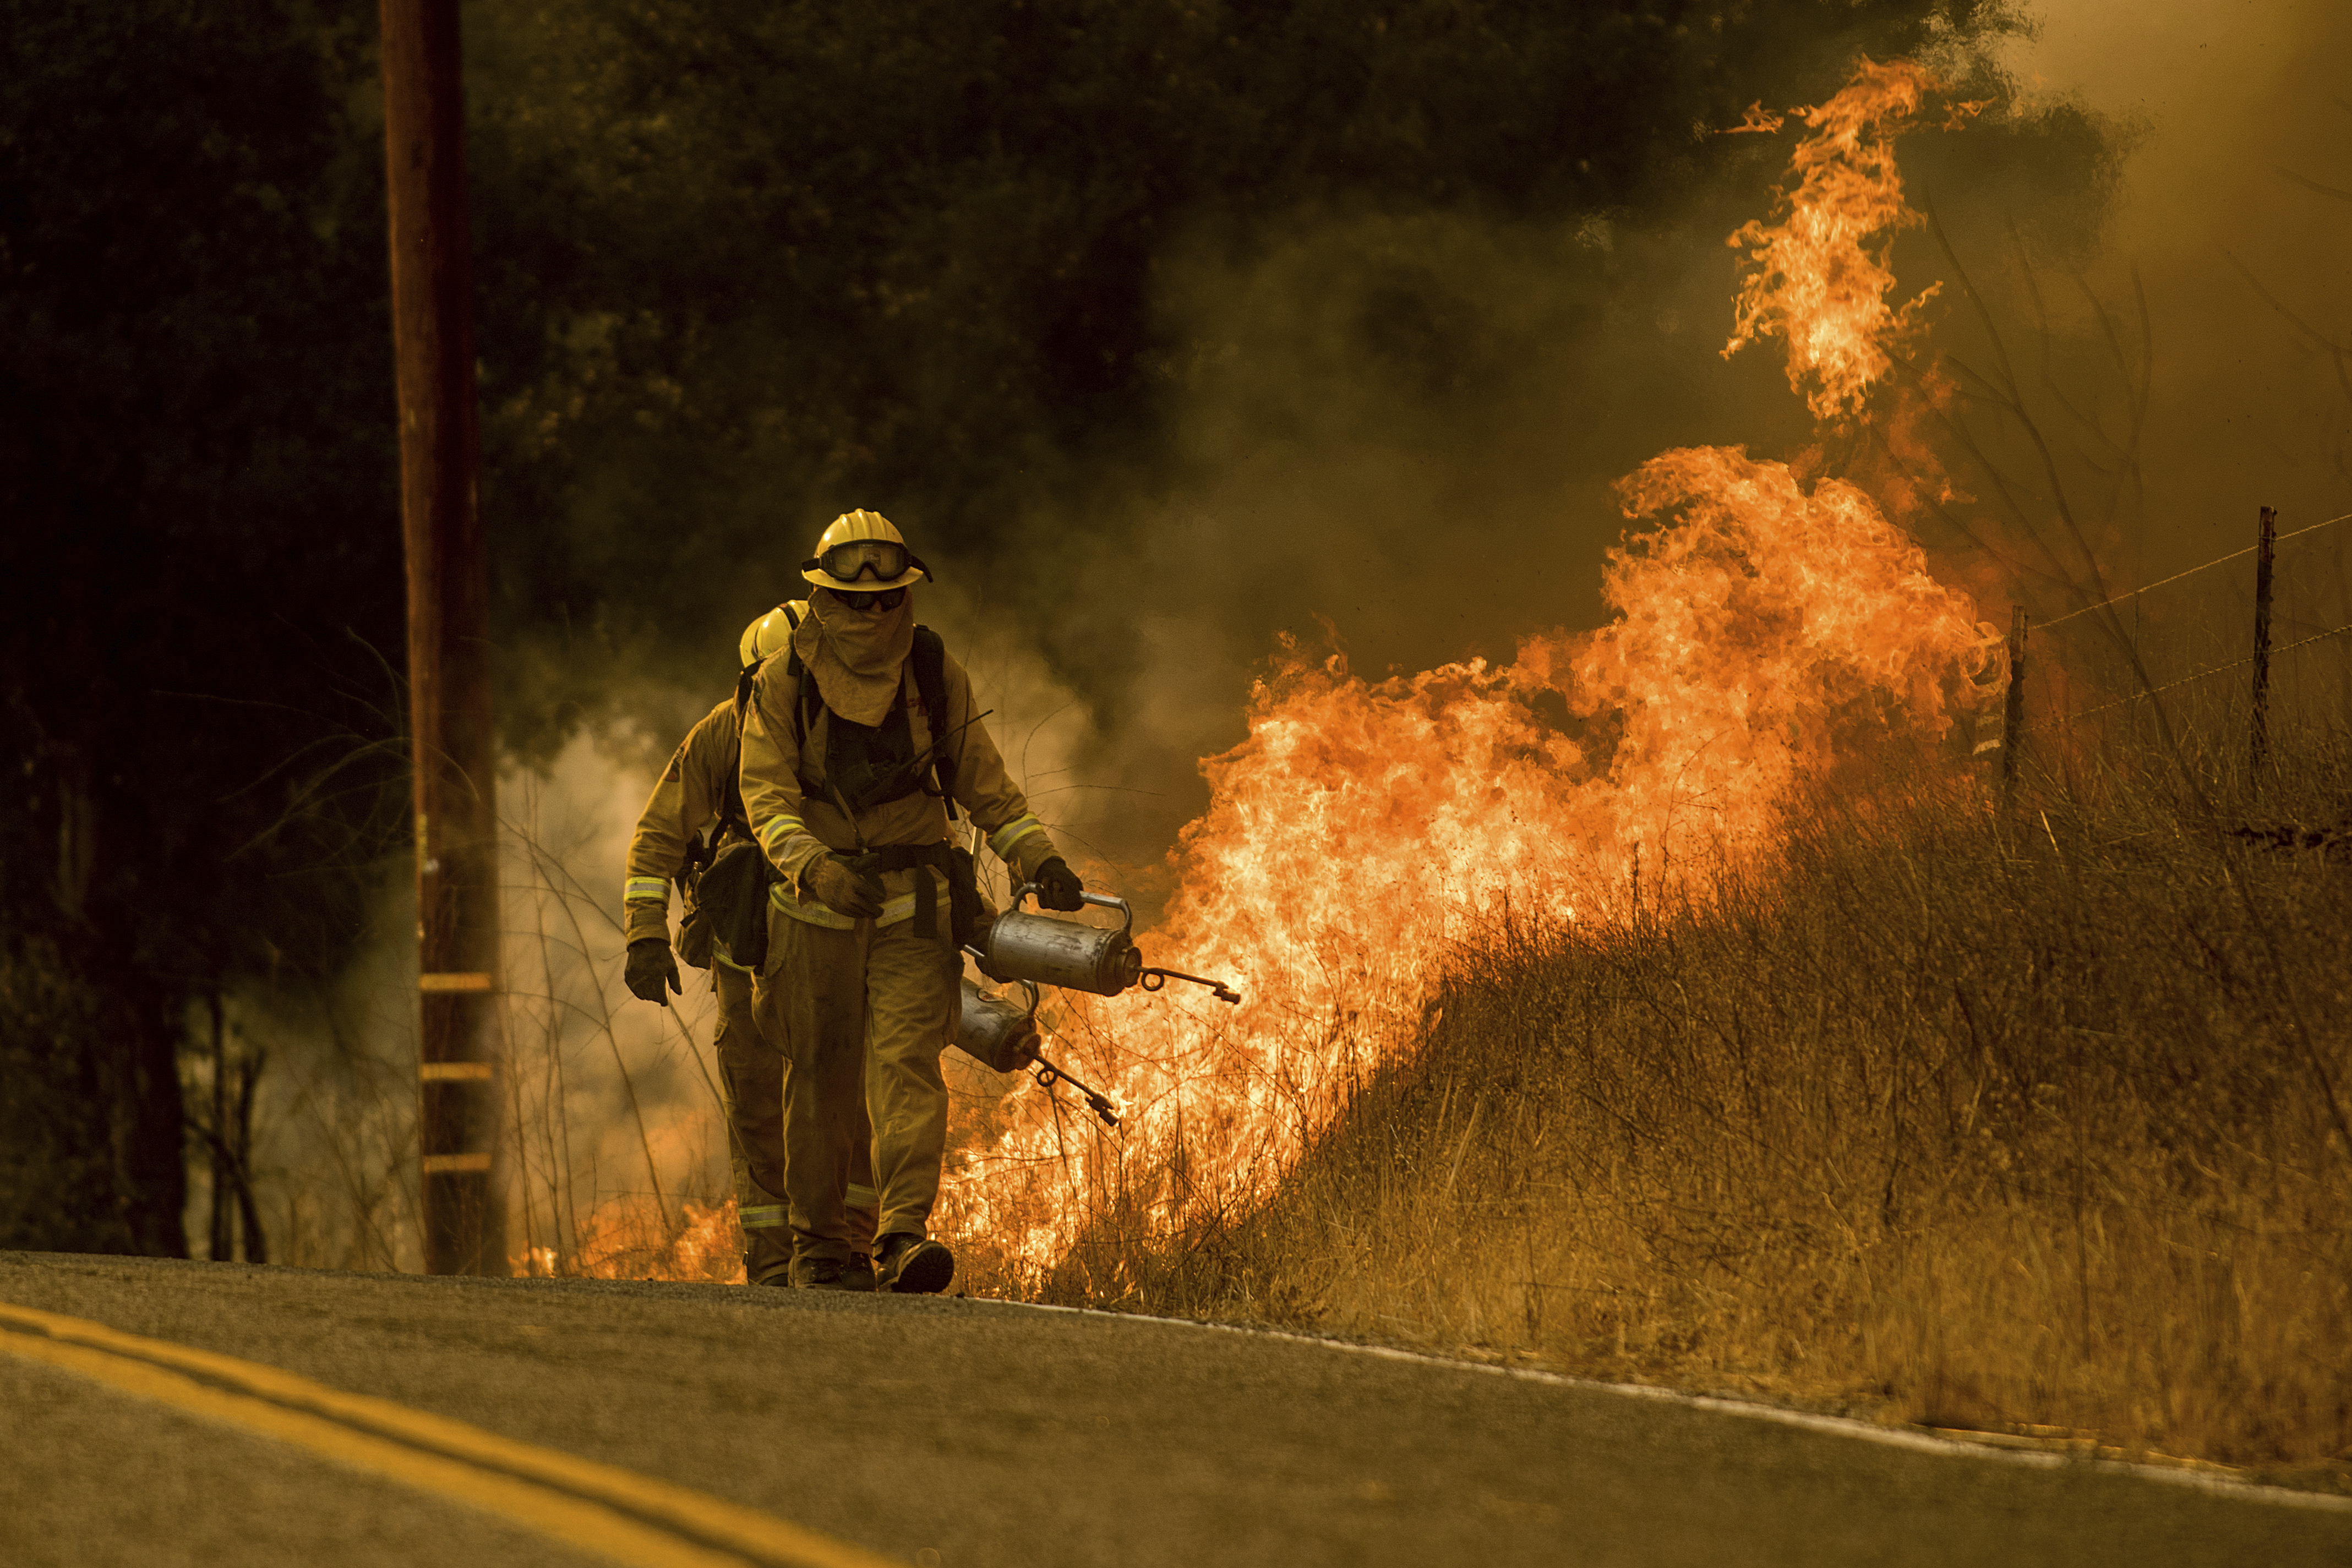 Firefighters light a backfire while trying to keep a wildfire from jumping Santa Ana Road near Ventura, Calif., Dec. 9, 2017.